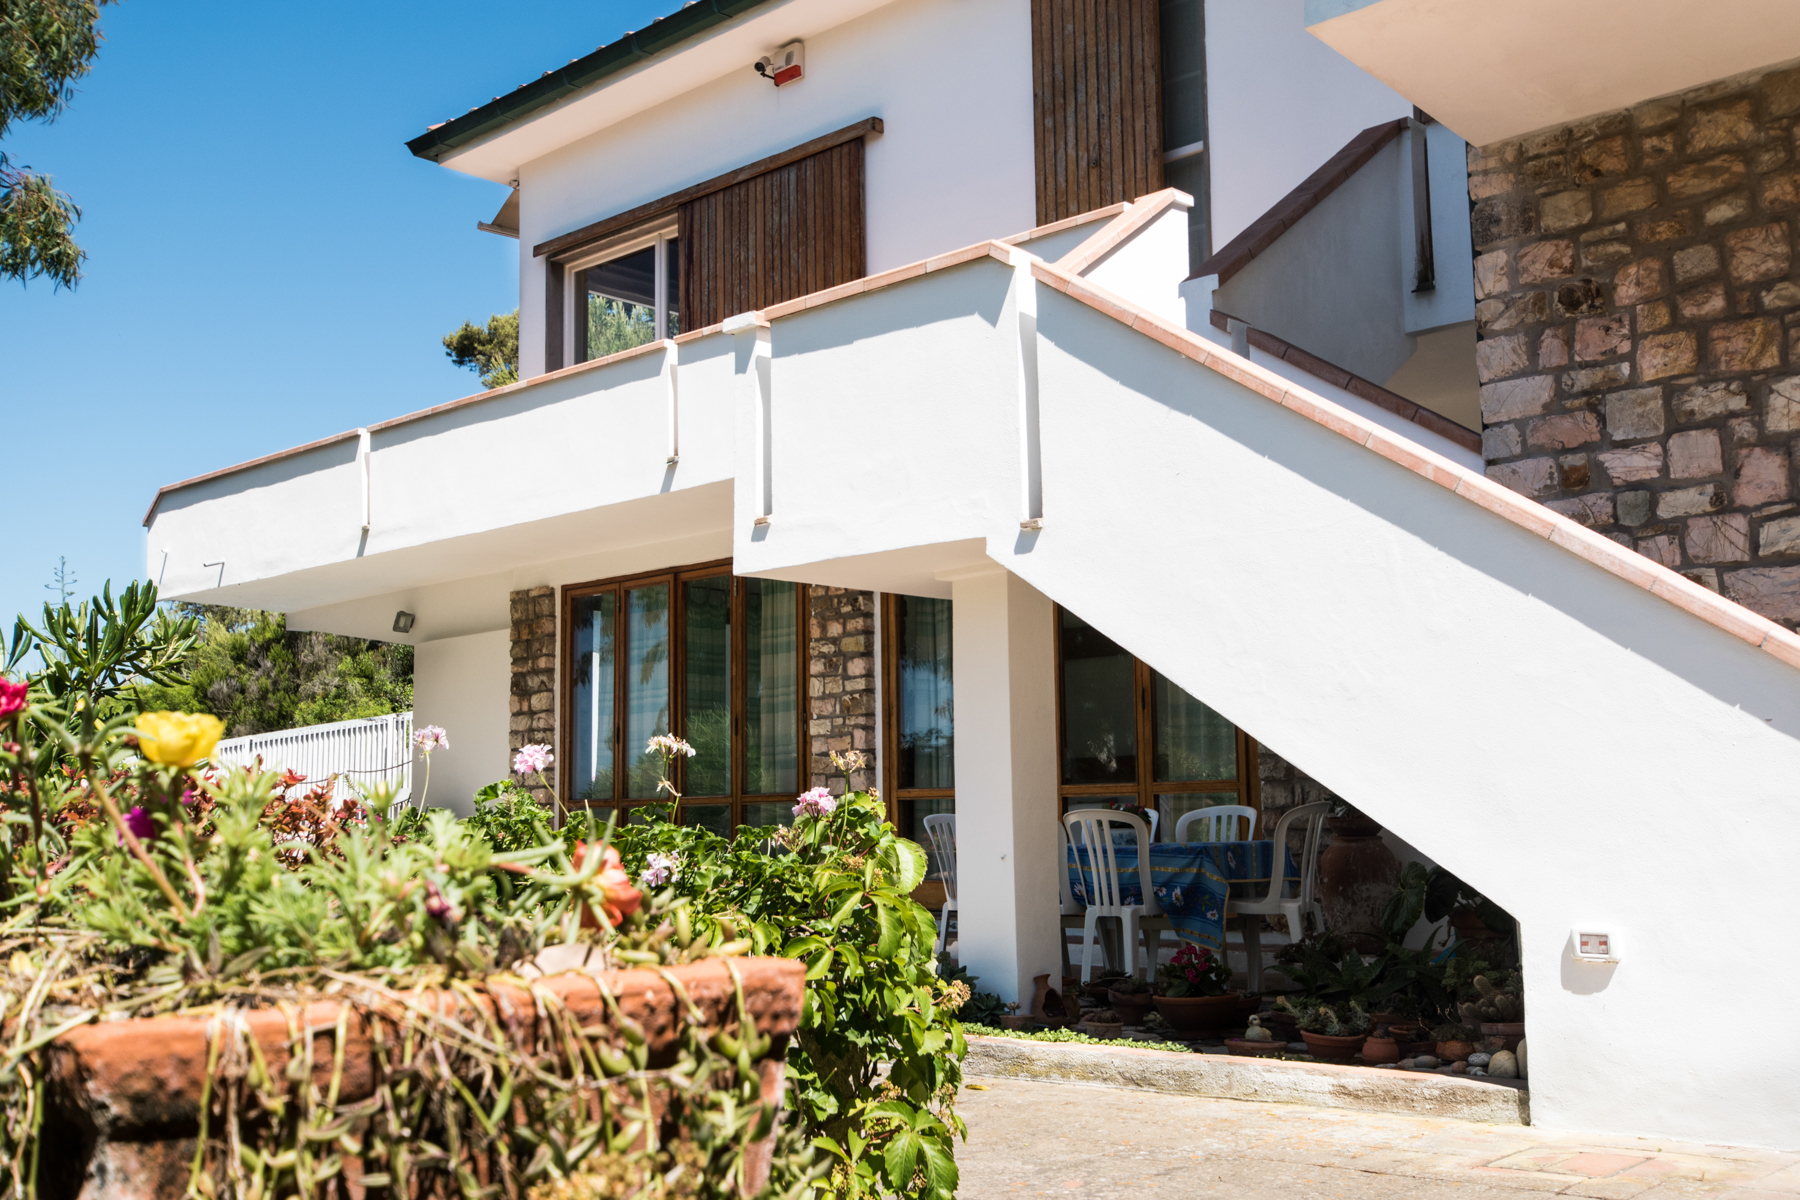 Additional photo for property listing at Unique beachfront villa with pool Via Einaudi Portoferraio, Livorno 57014 Italy